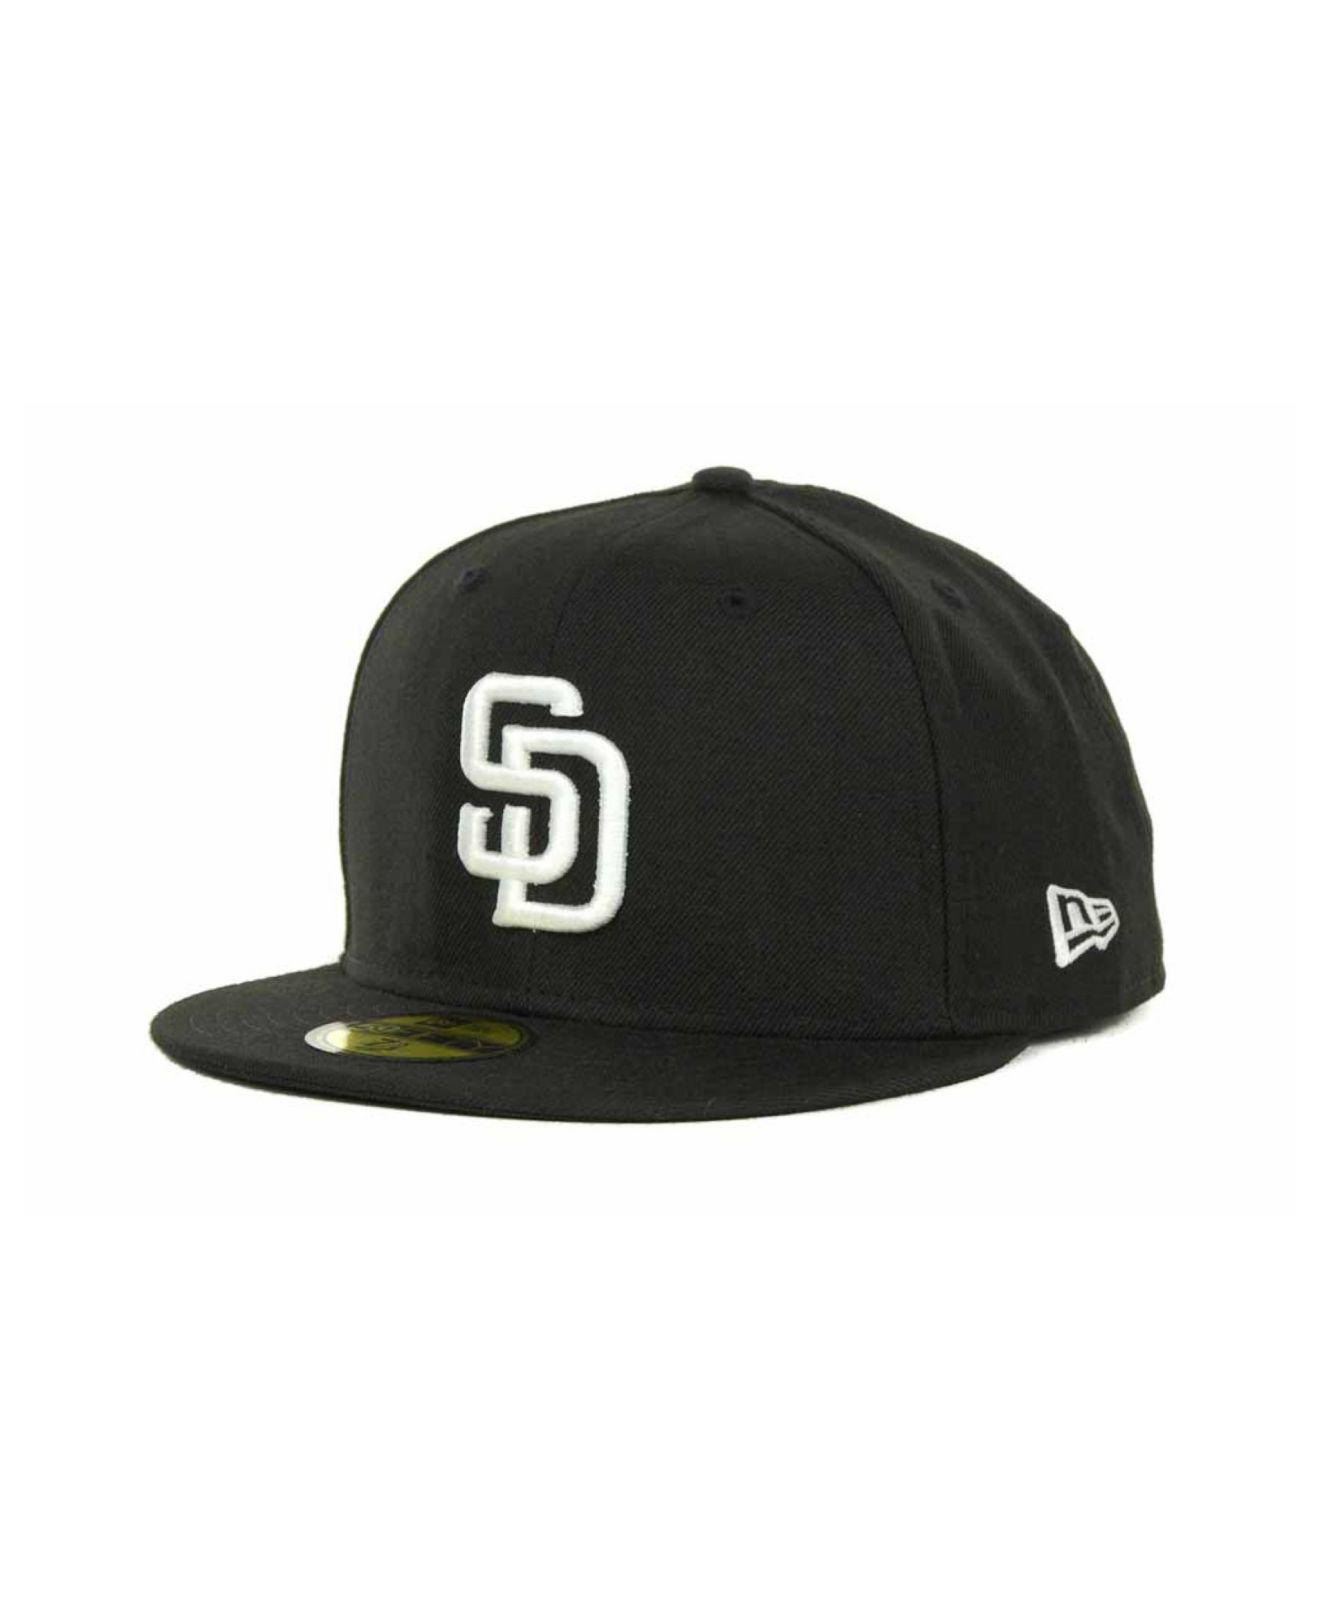 04799c2a83d27 Lyst - KTZ San Diego Padres Mlb B-dub 59fifty Cap in Black for Men